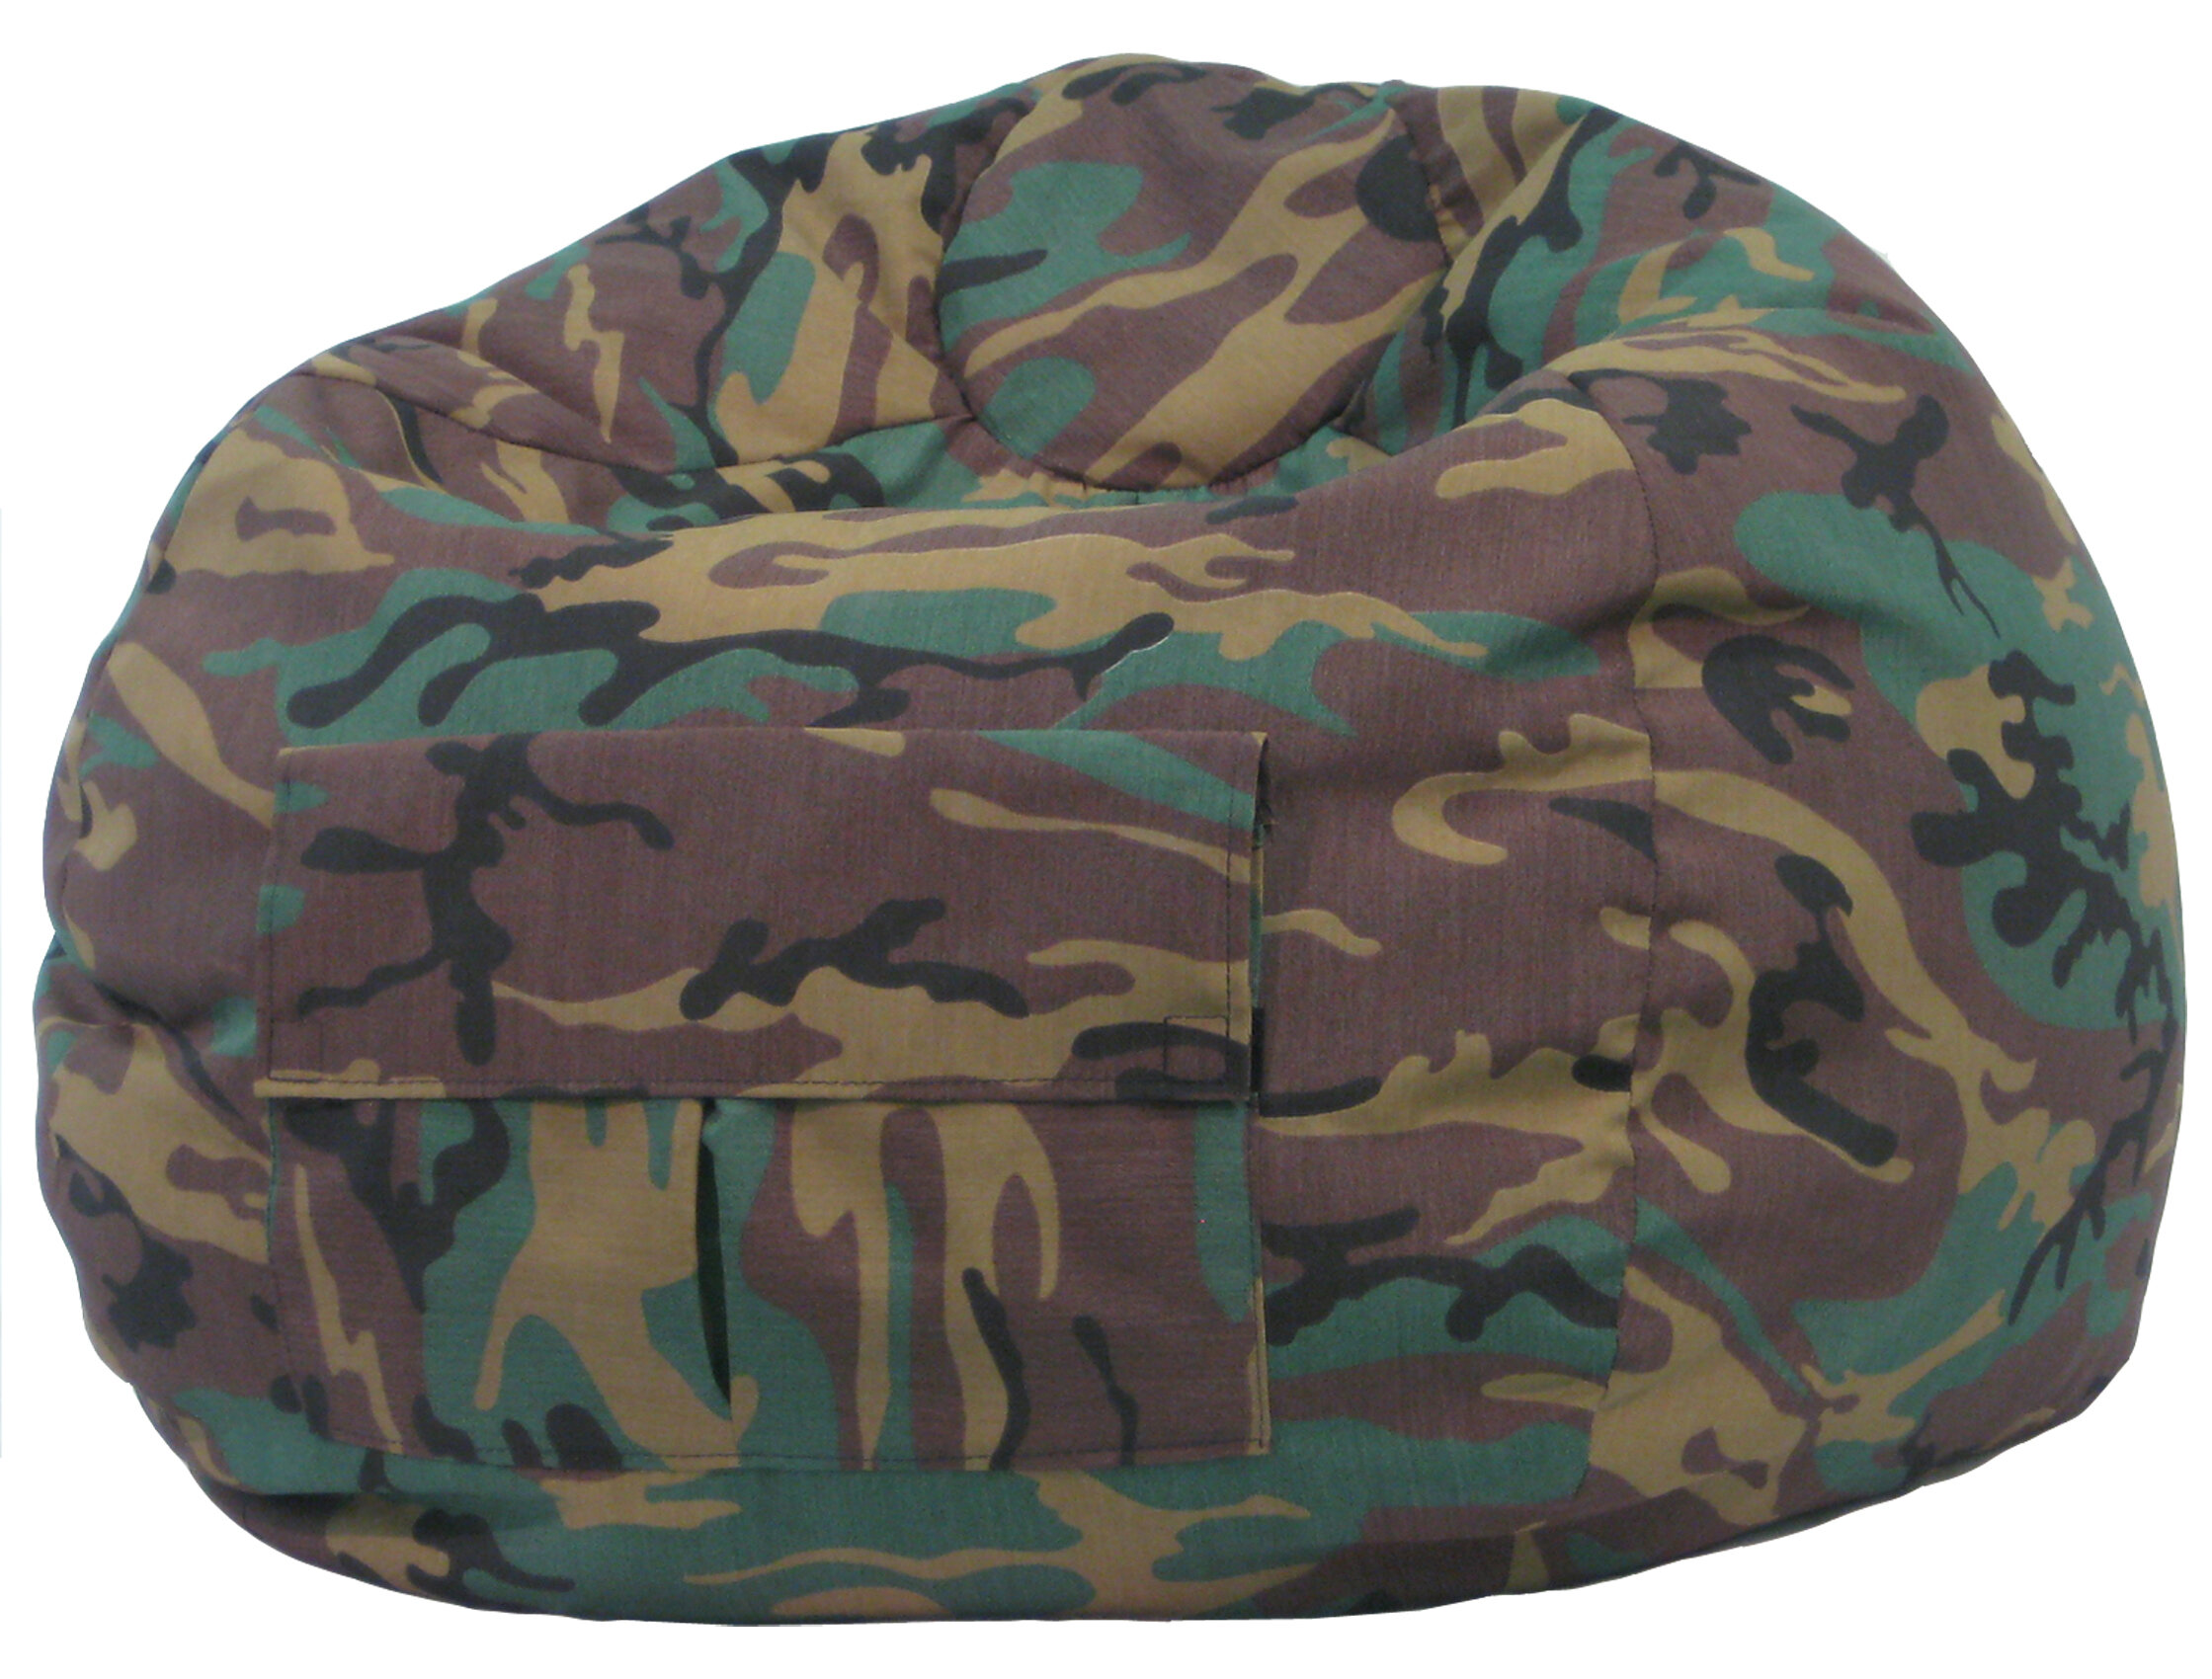 Bon Gold Medal Bean Bags Camouflage Bean Bag Chair U0026 Reviews | Wayfair